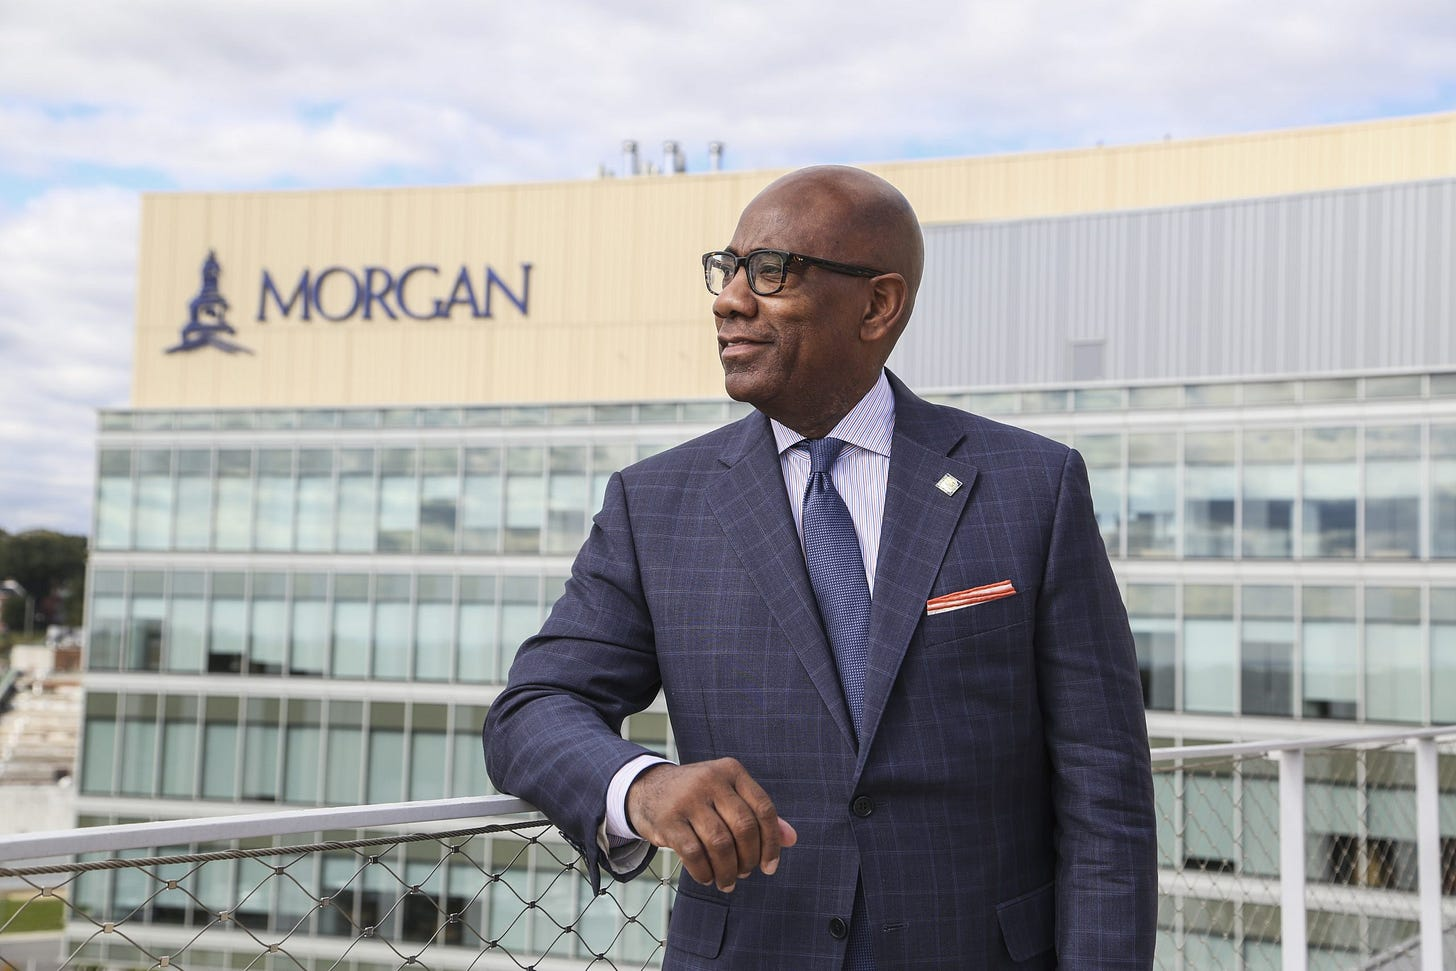 Morgan State University President Receives Authorization to Pursue  Affiliate Agreement to Add New College of Osteopathic Medicine – Morgan  State University Newsroom